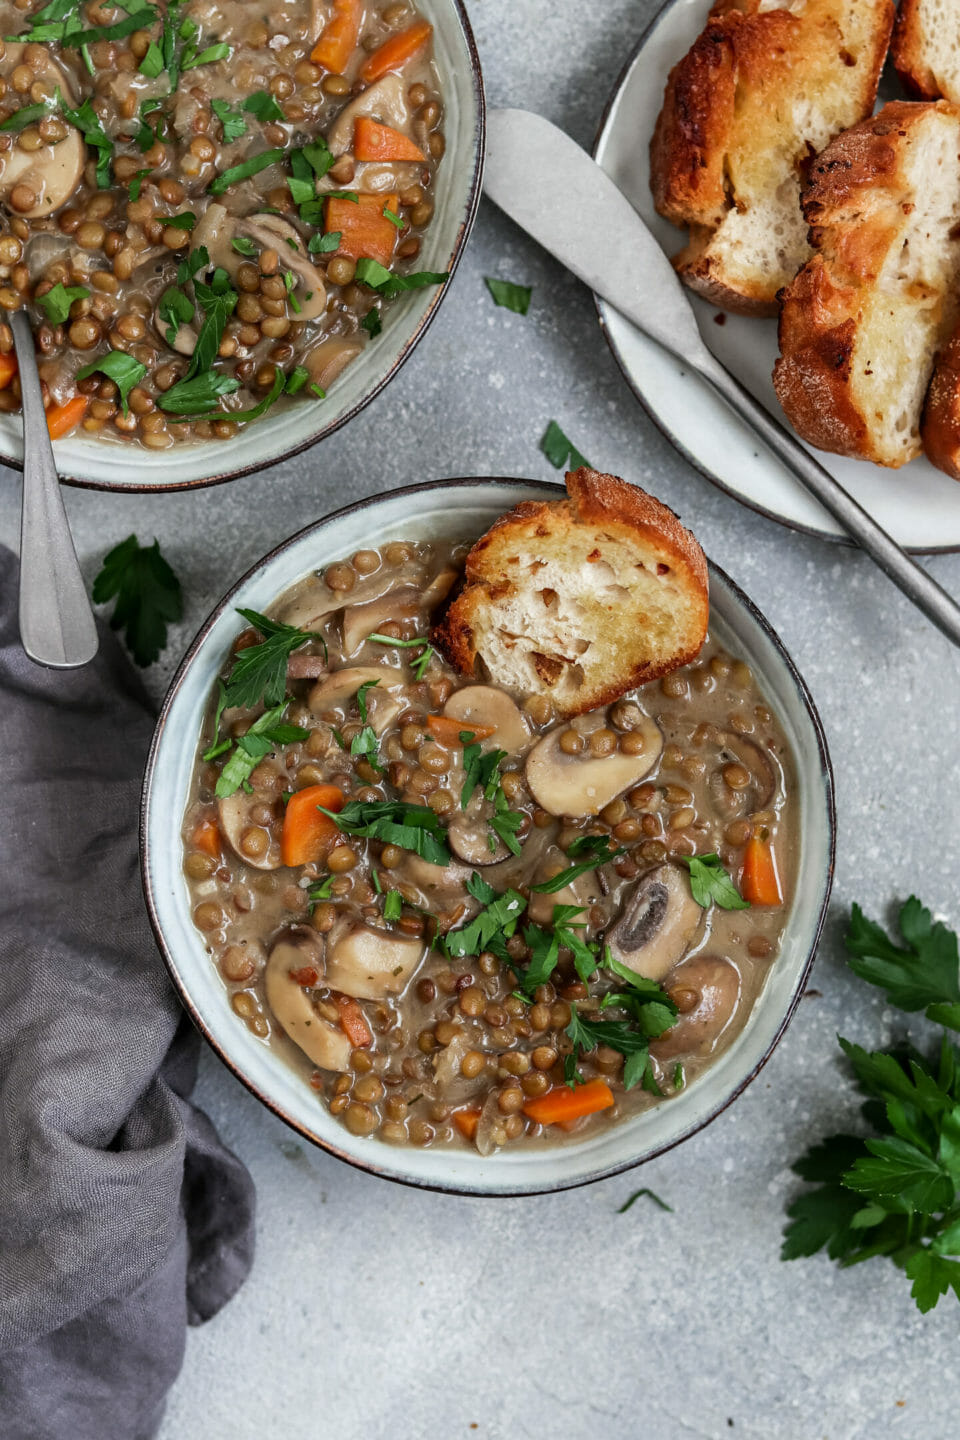 Vegan lentil stew with mushrooms and carrots.